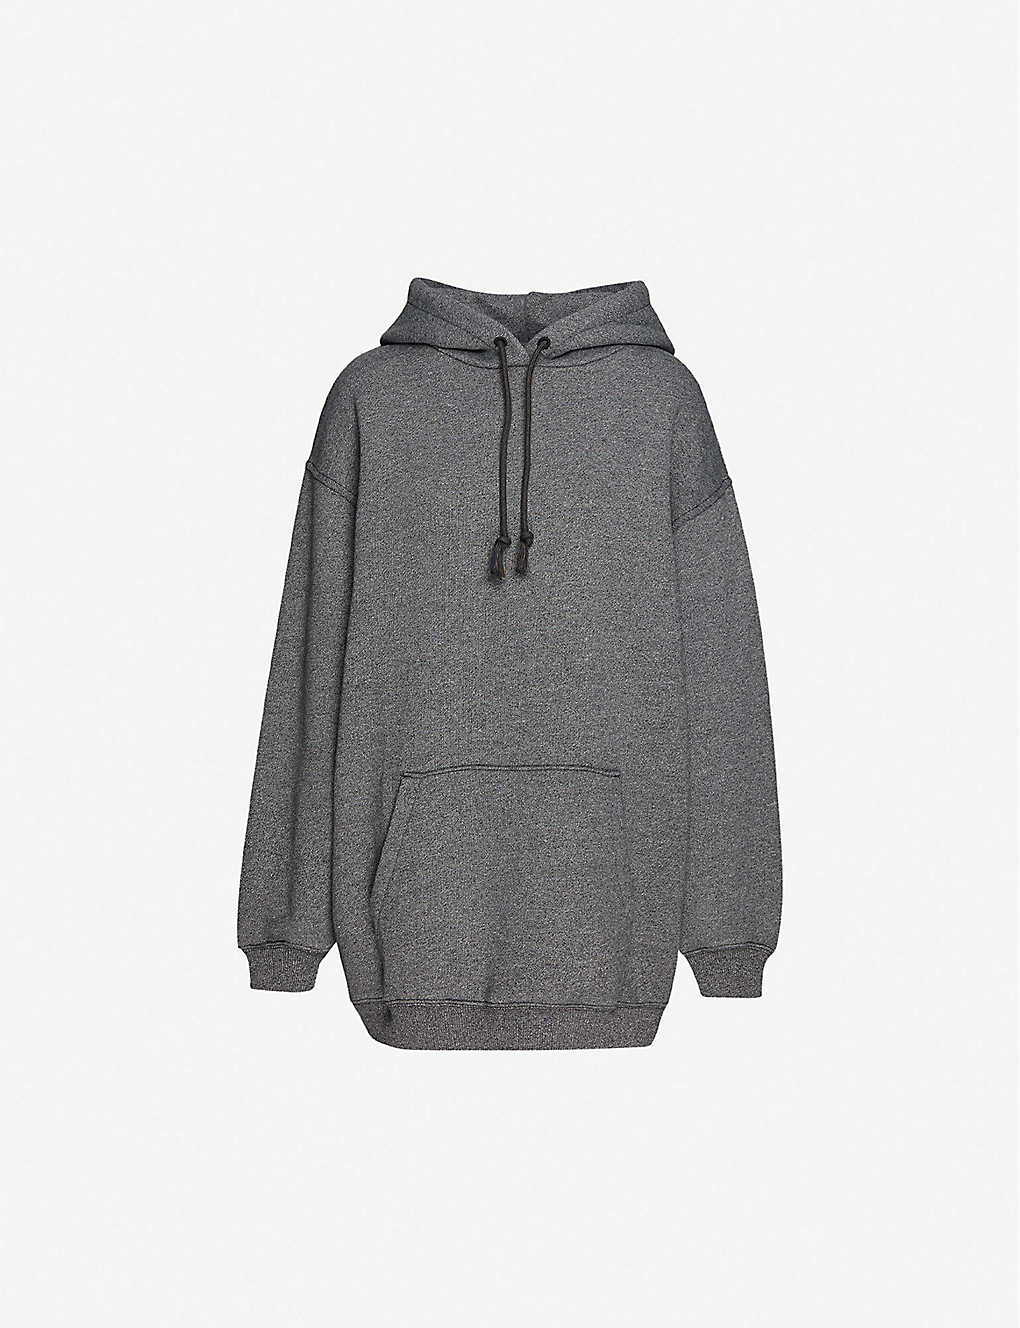 ACNE STUDIOS: Oversized cotton-blend jersey hoody